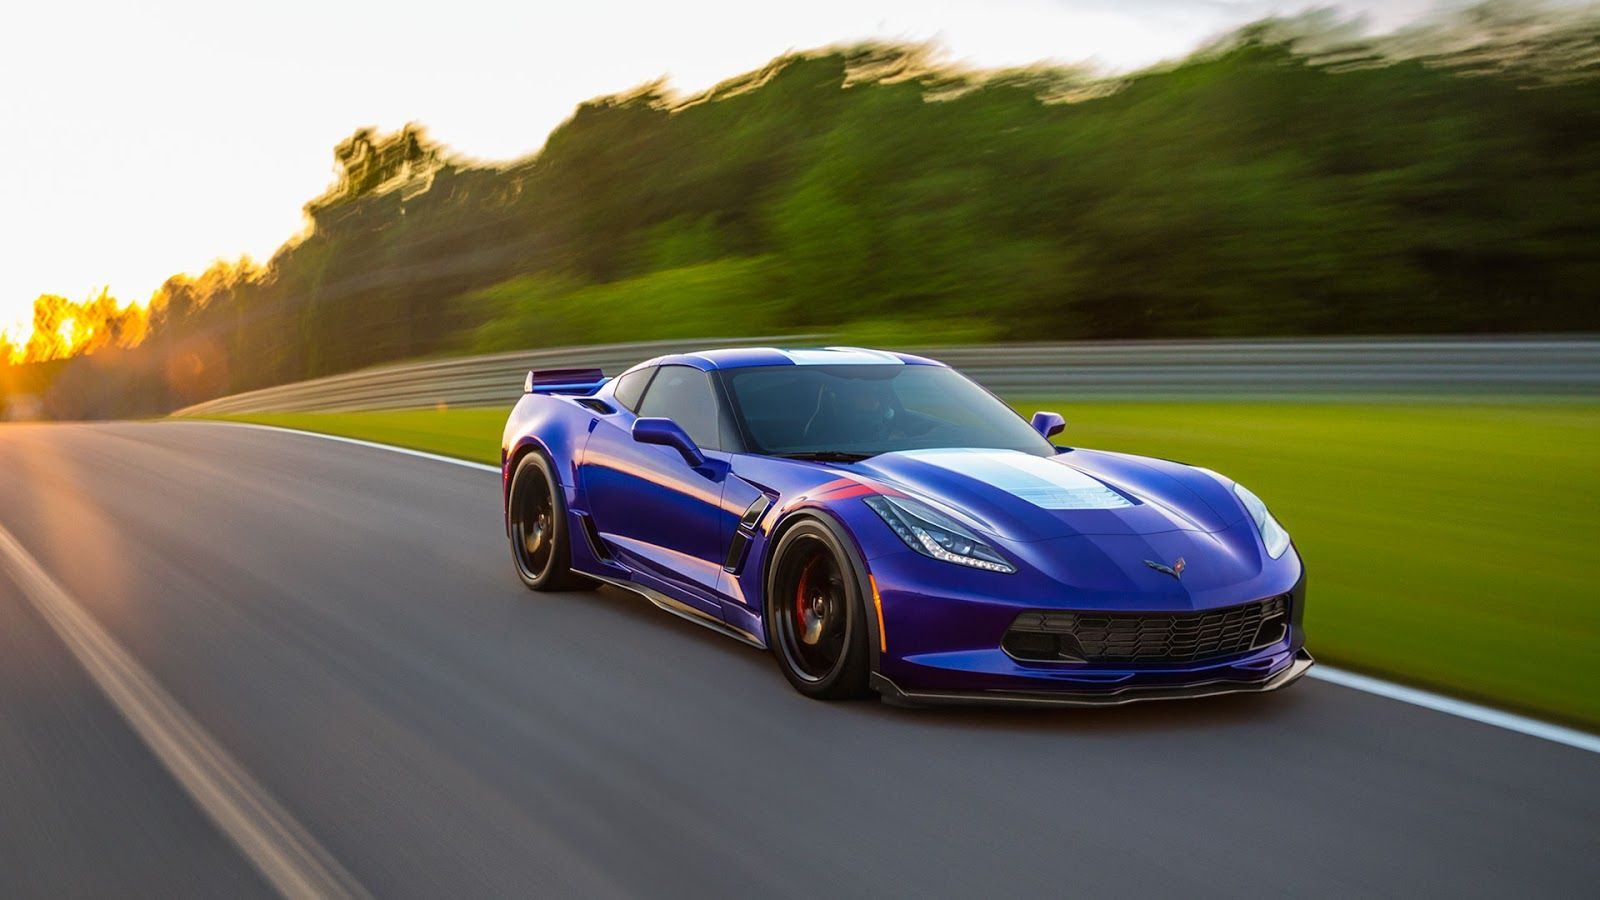 Chevrolet Corvette Grand Sport Rear Hd Wallpaper